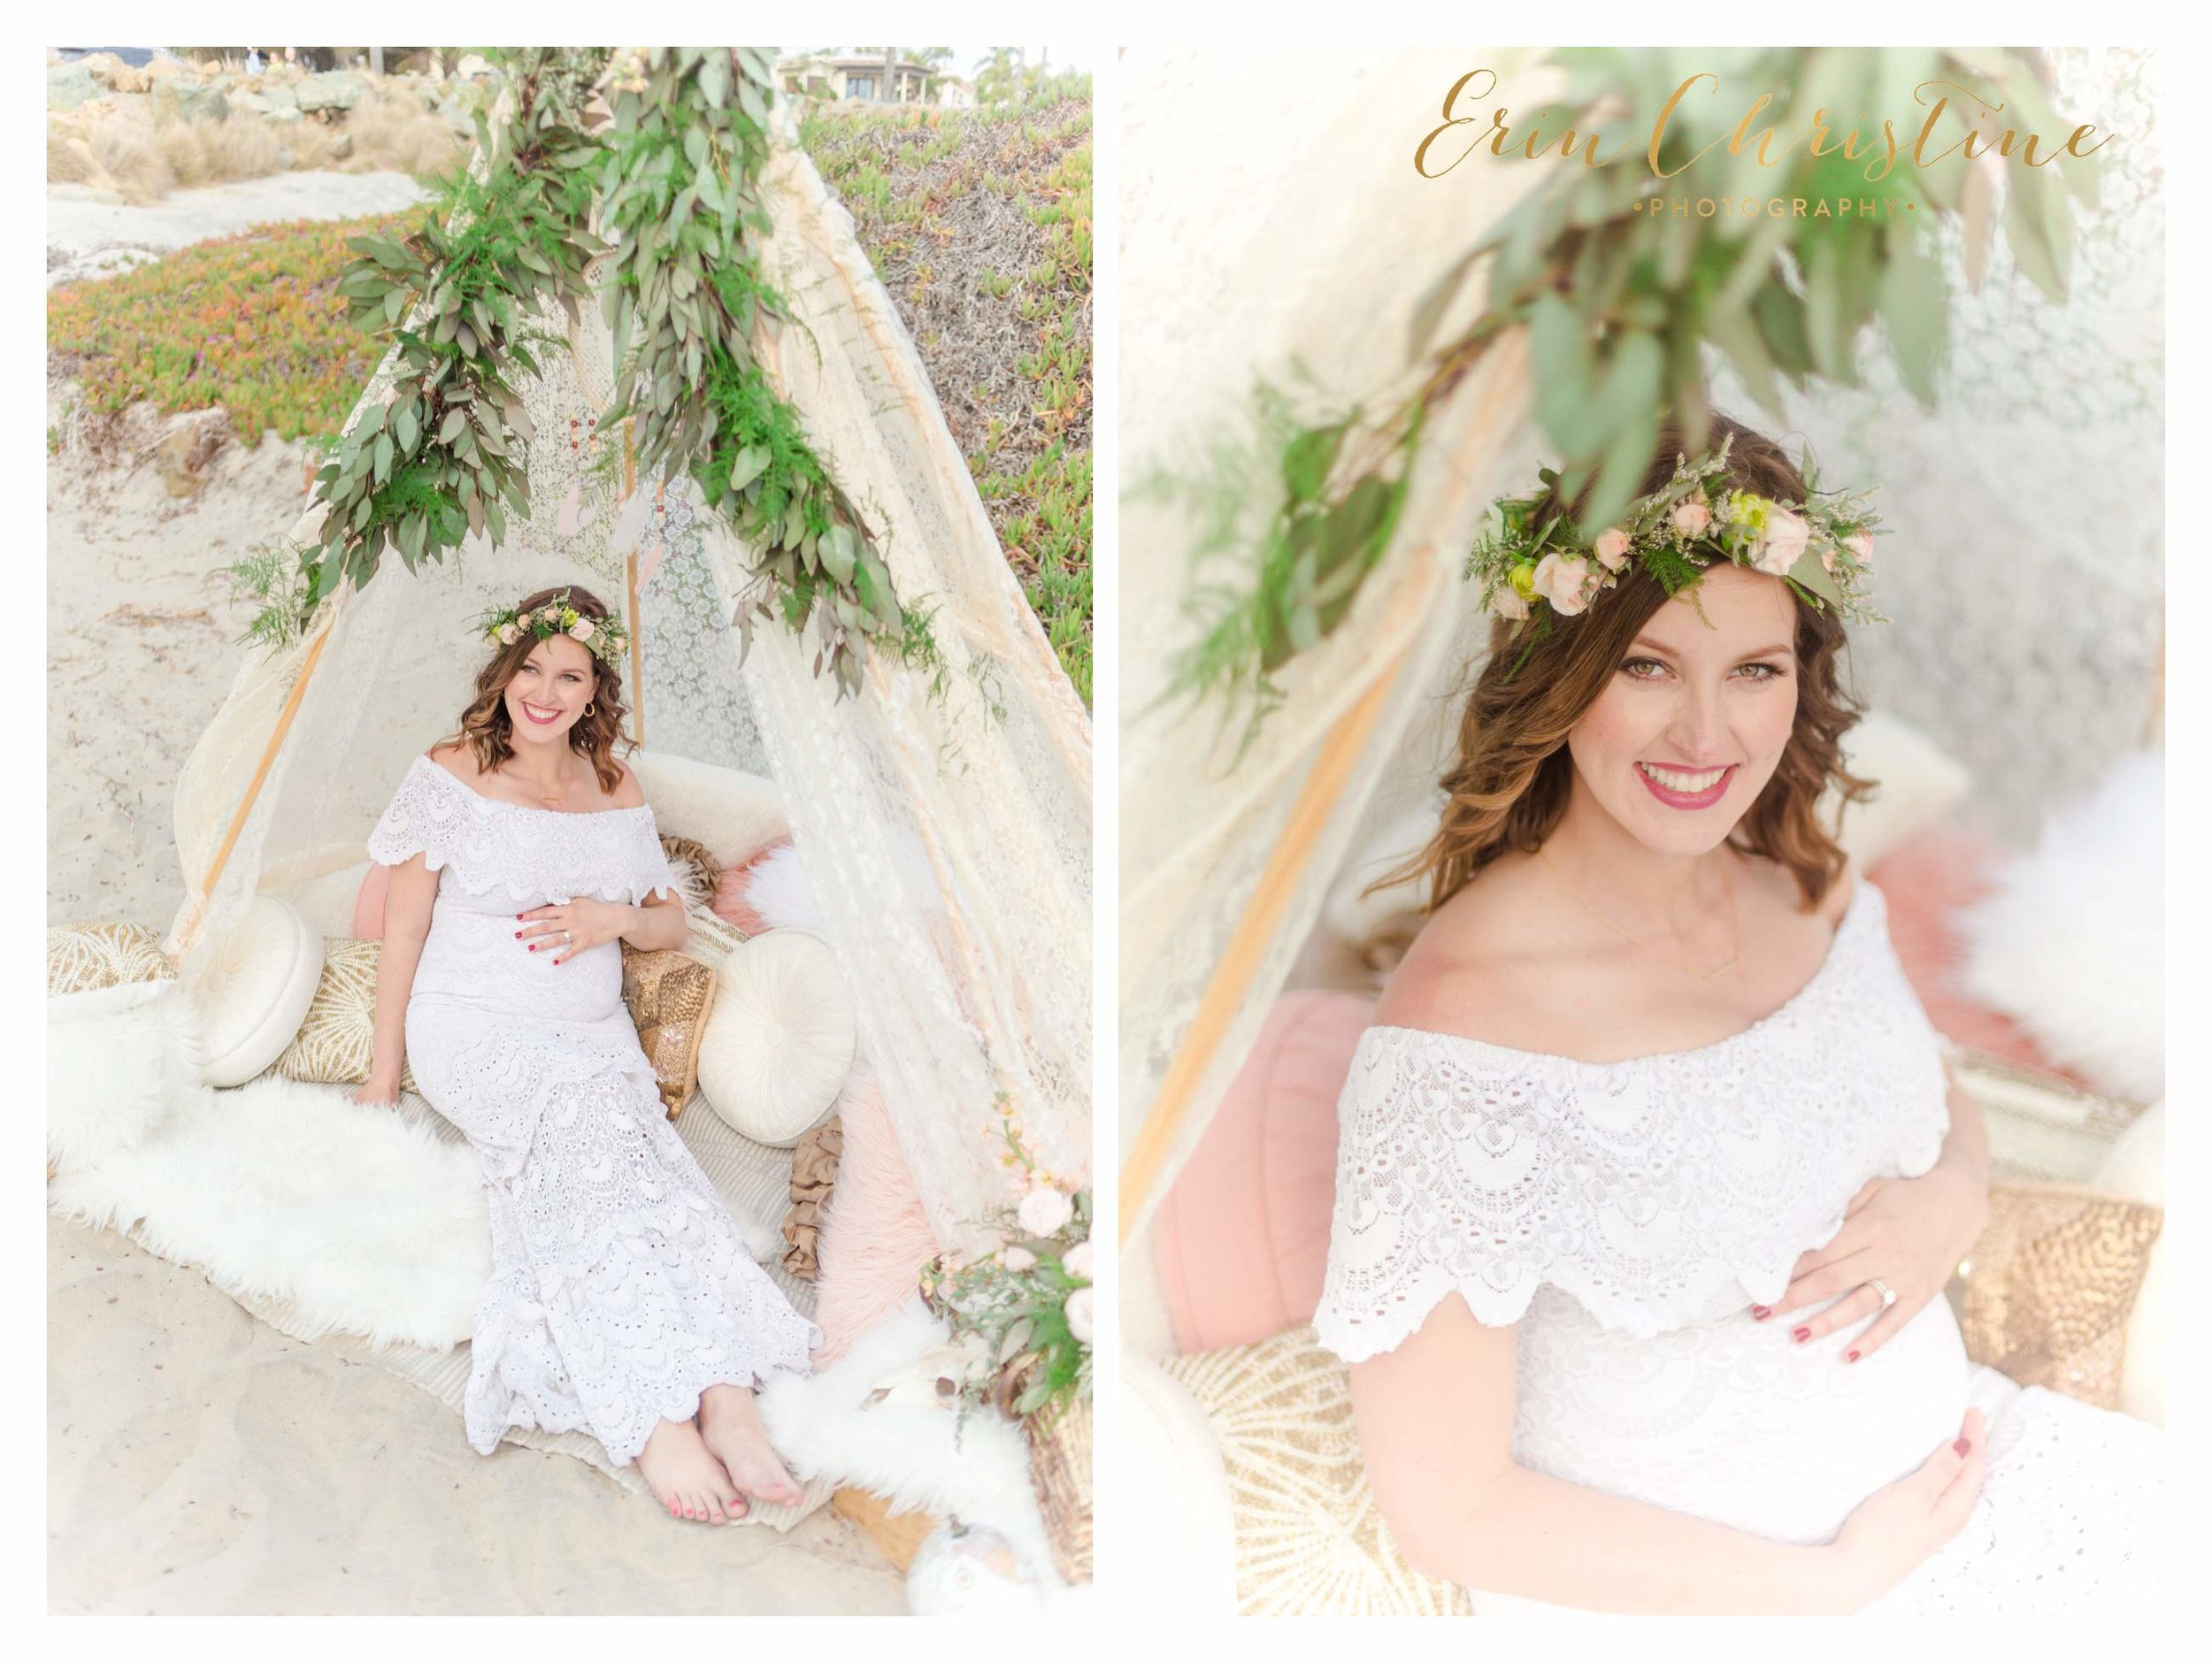 Coronado Beach Maternity Photos